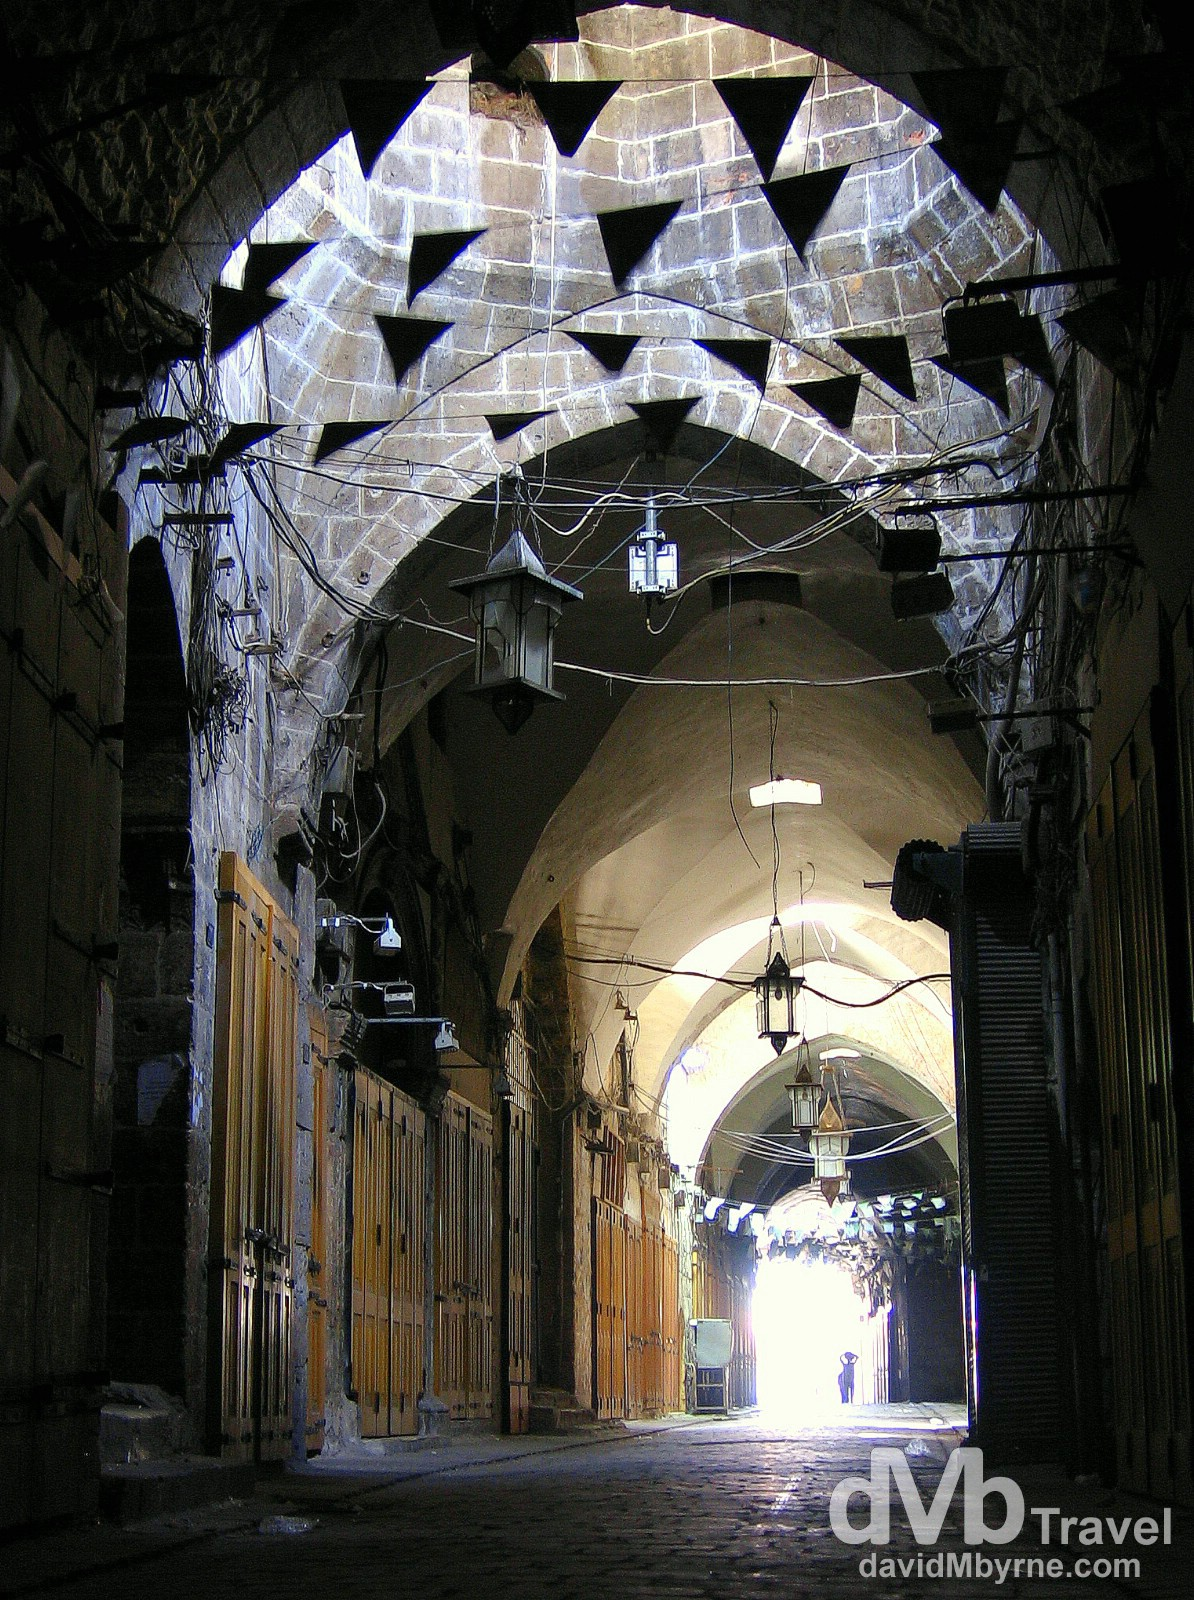 A section of the empty al-Madina souq in Aleppo, Syria. May 9, 2008.